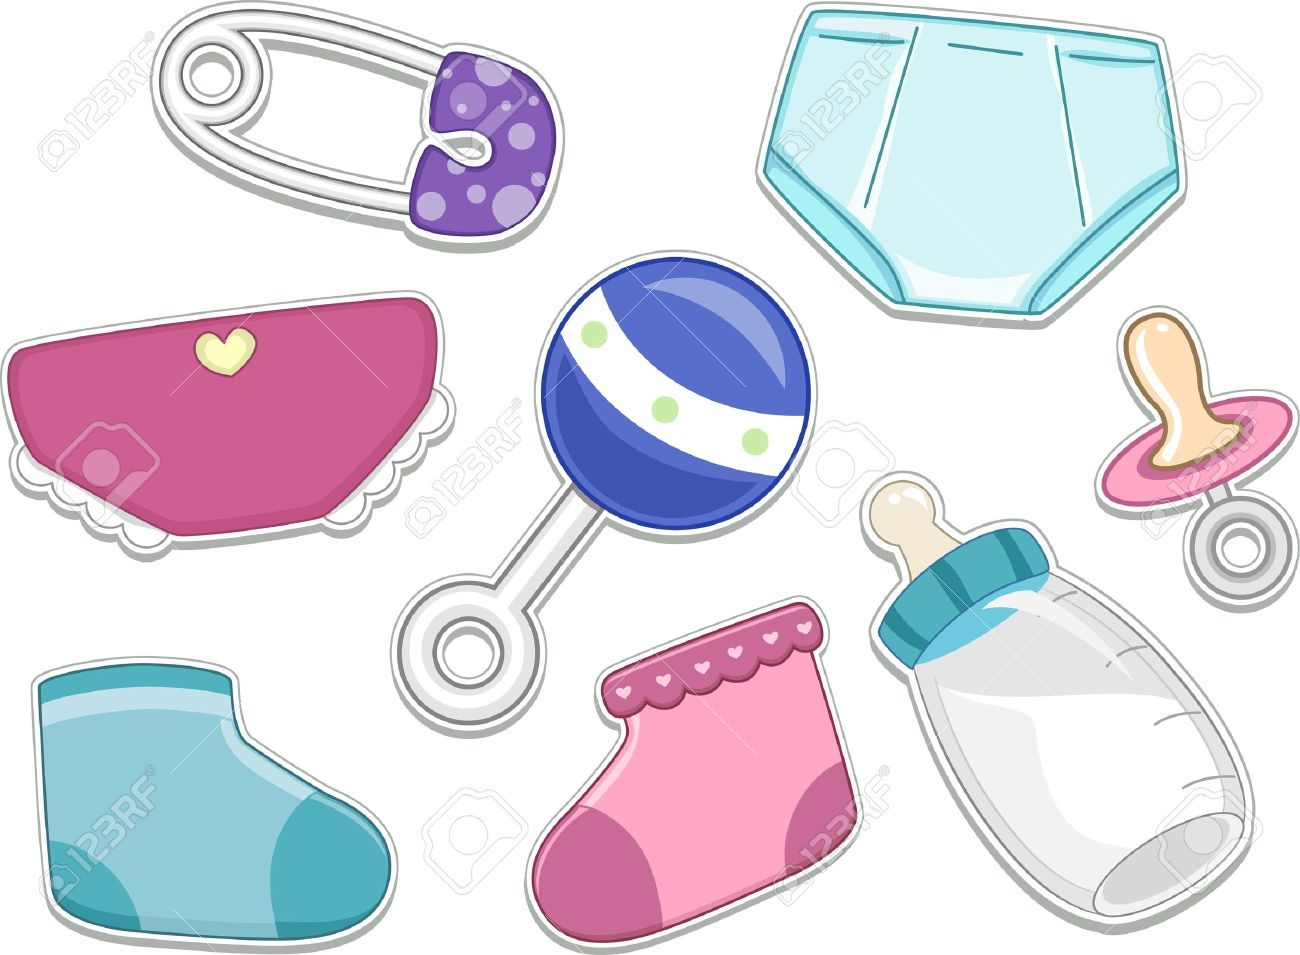 Illustrations Of Baby Products That Can Be Printed Out As Stickers ...